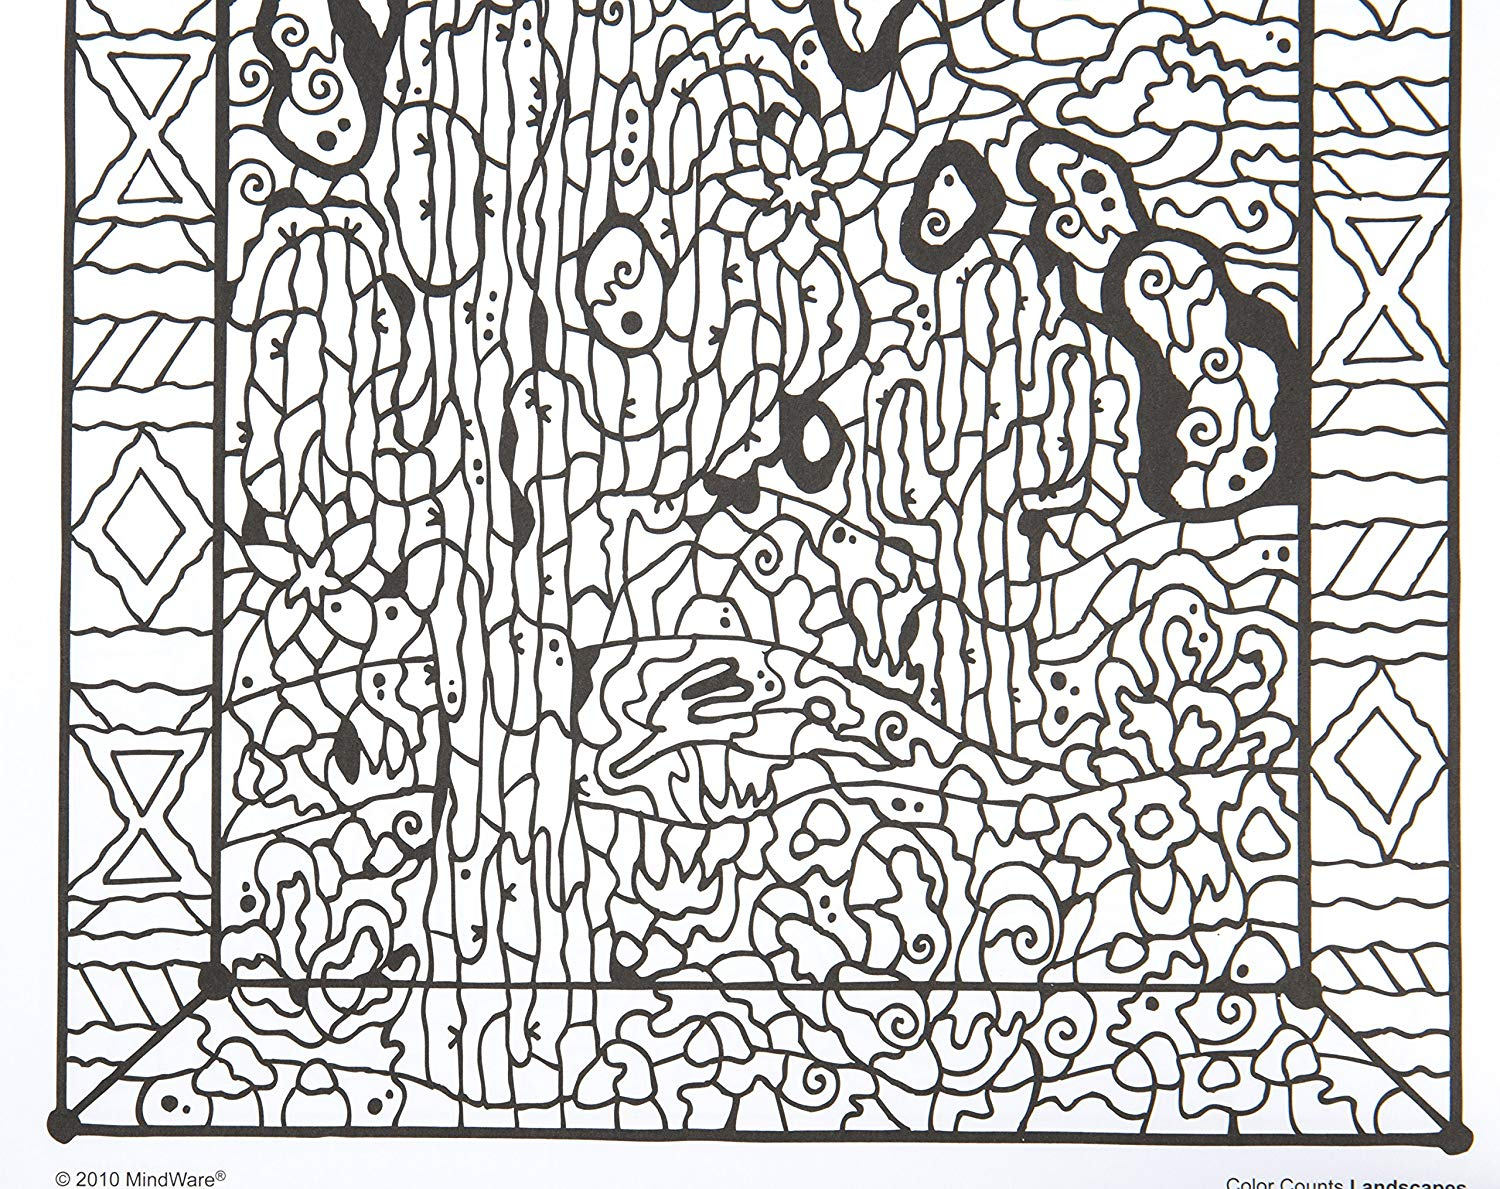 mindware coloring pages free Collection-A1ivgXPoccL SL1500 7-k